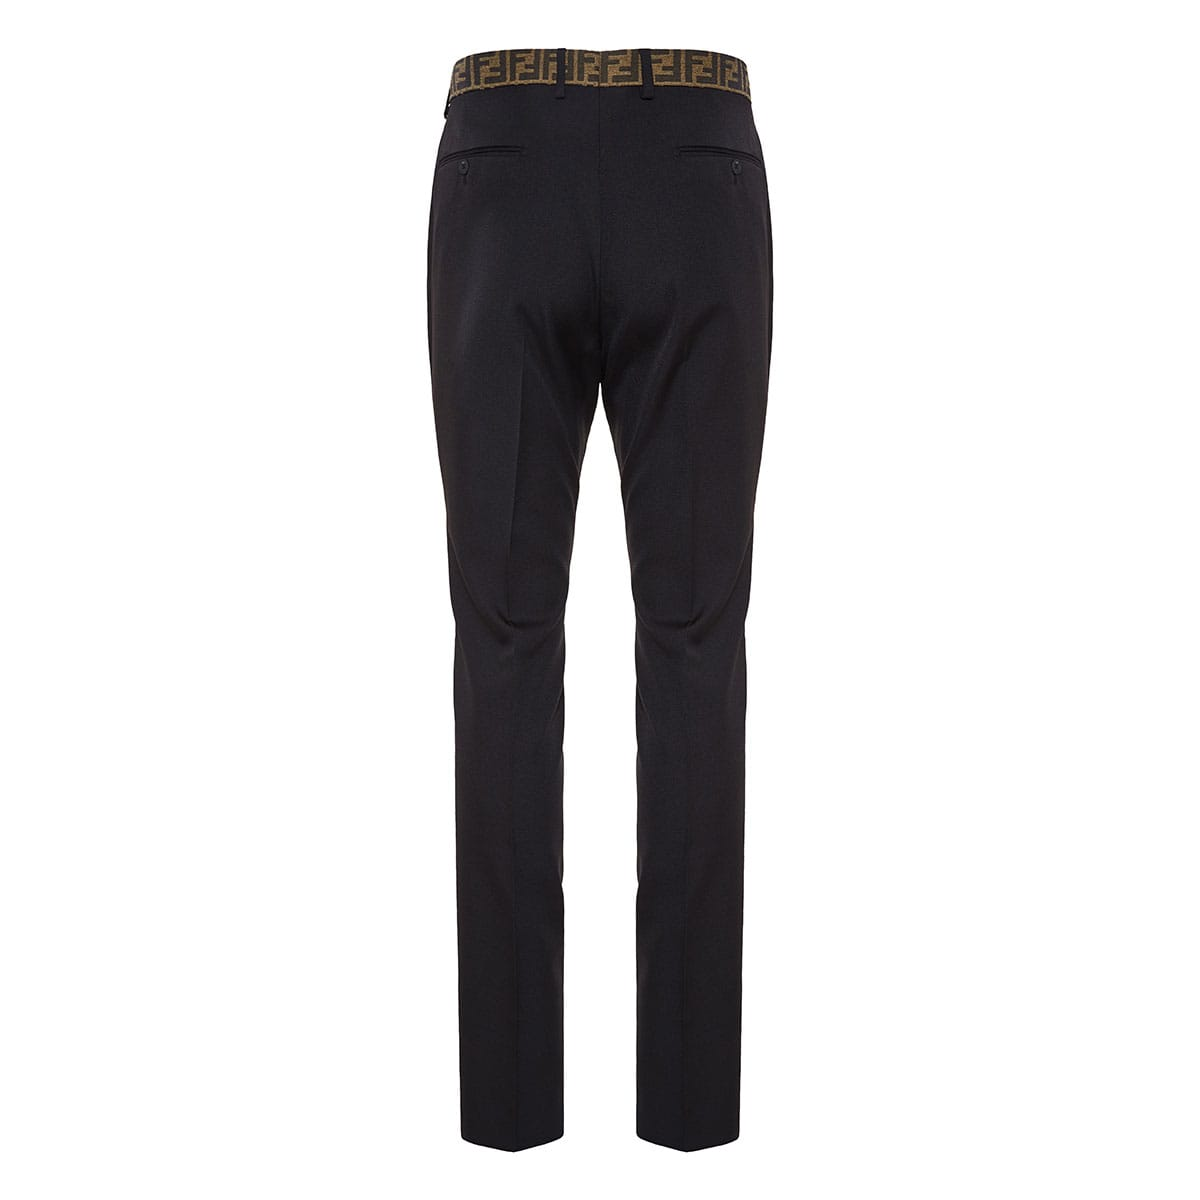 Tailored trousers with FF detail